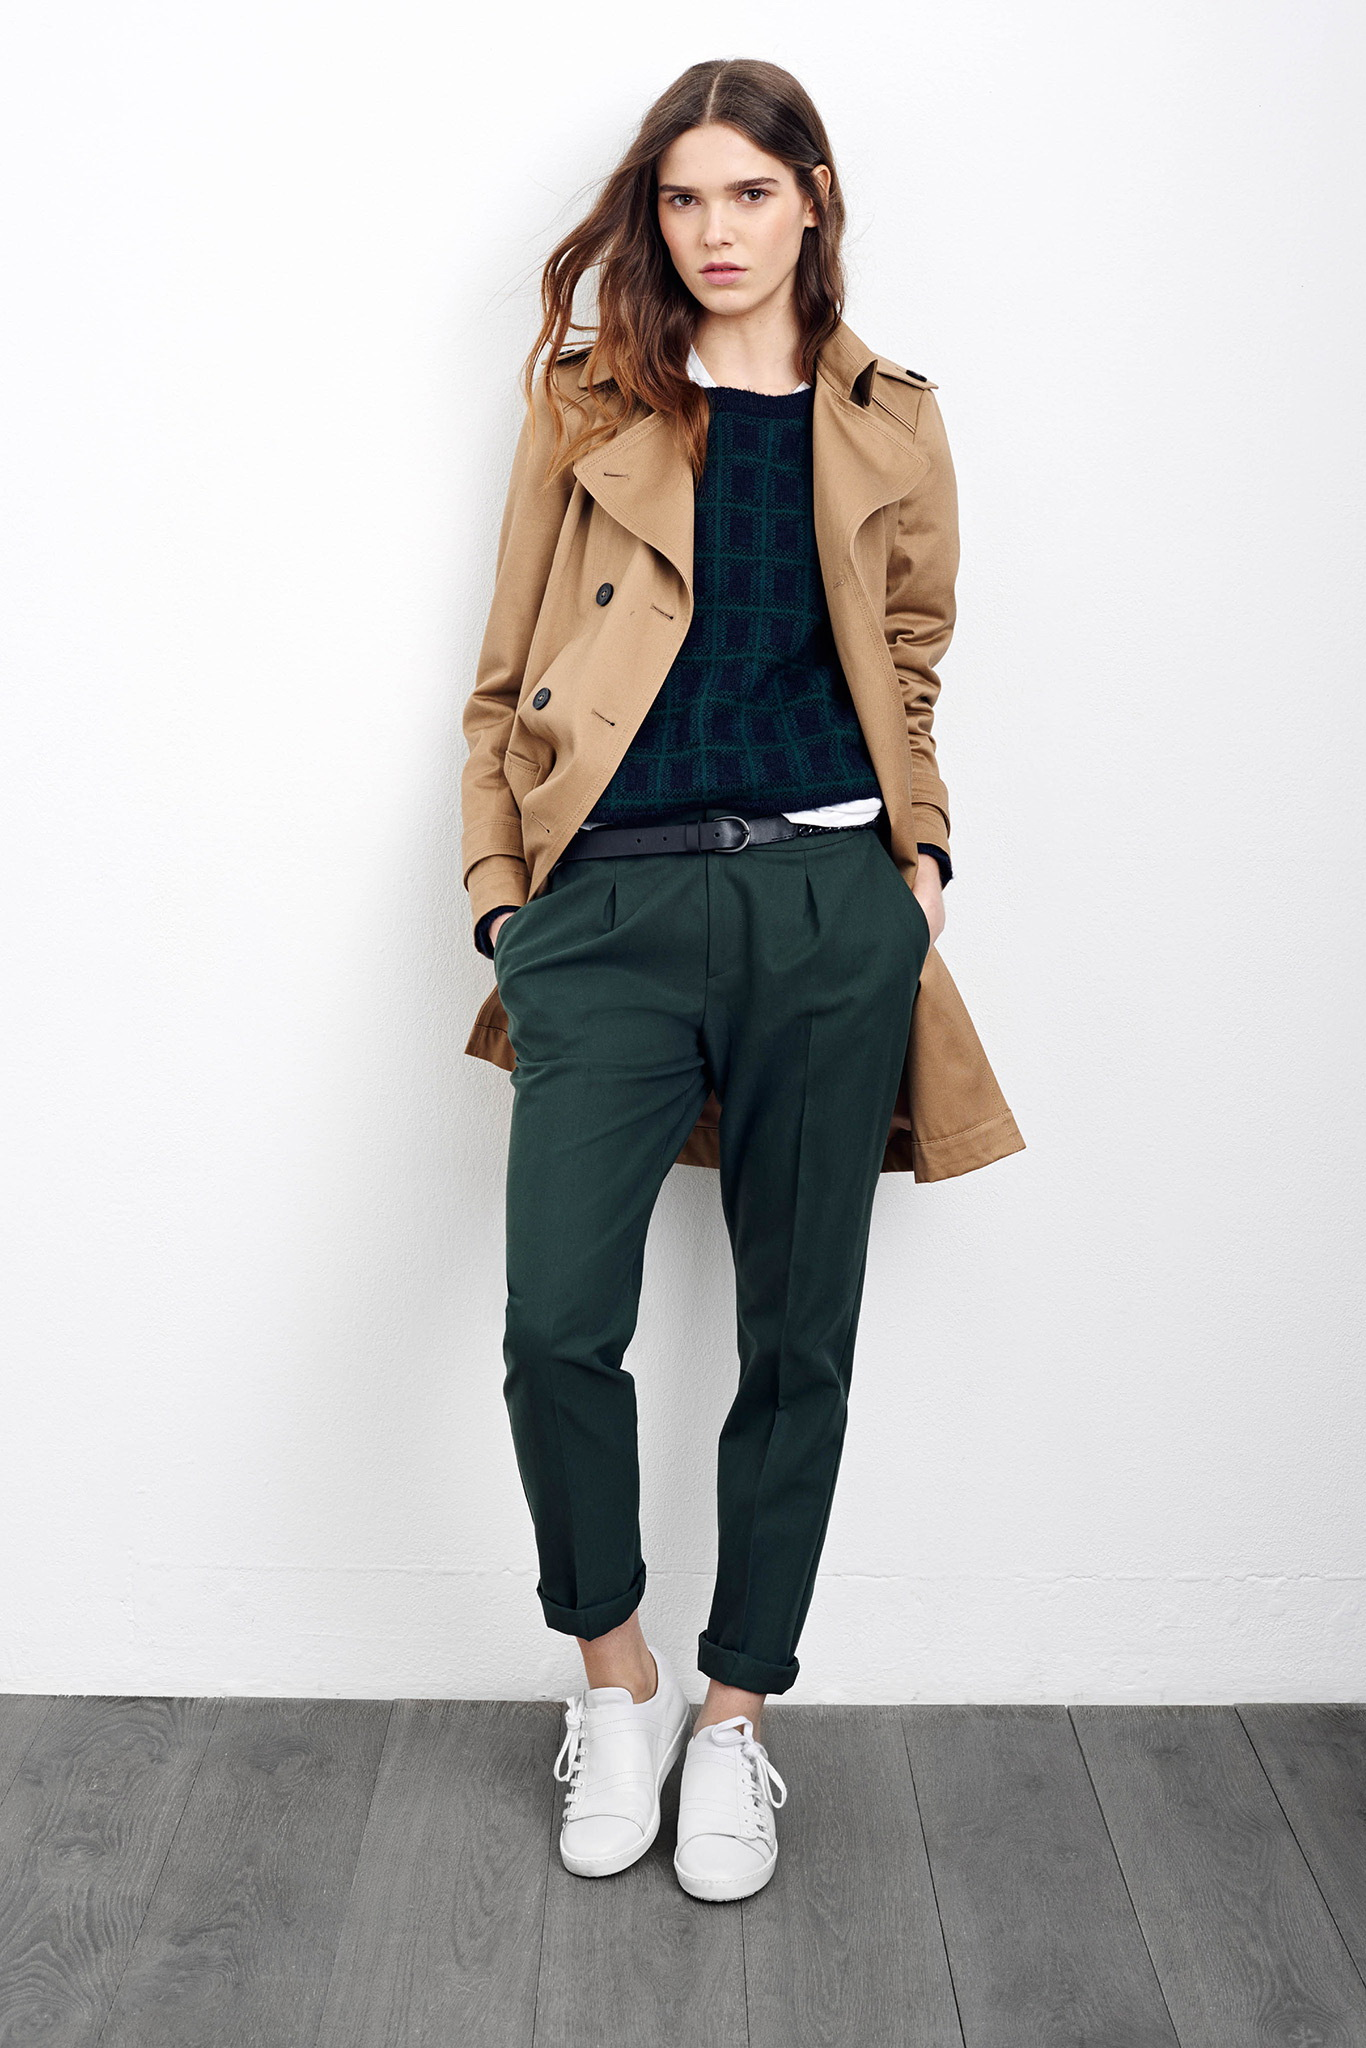 Womens-Camel-Coats-Autumn-Winter-2015-2016-Fashion-Trend-1